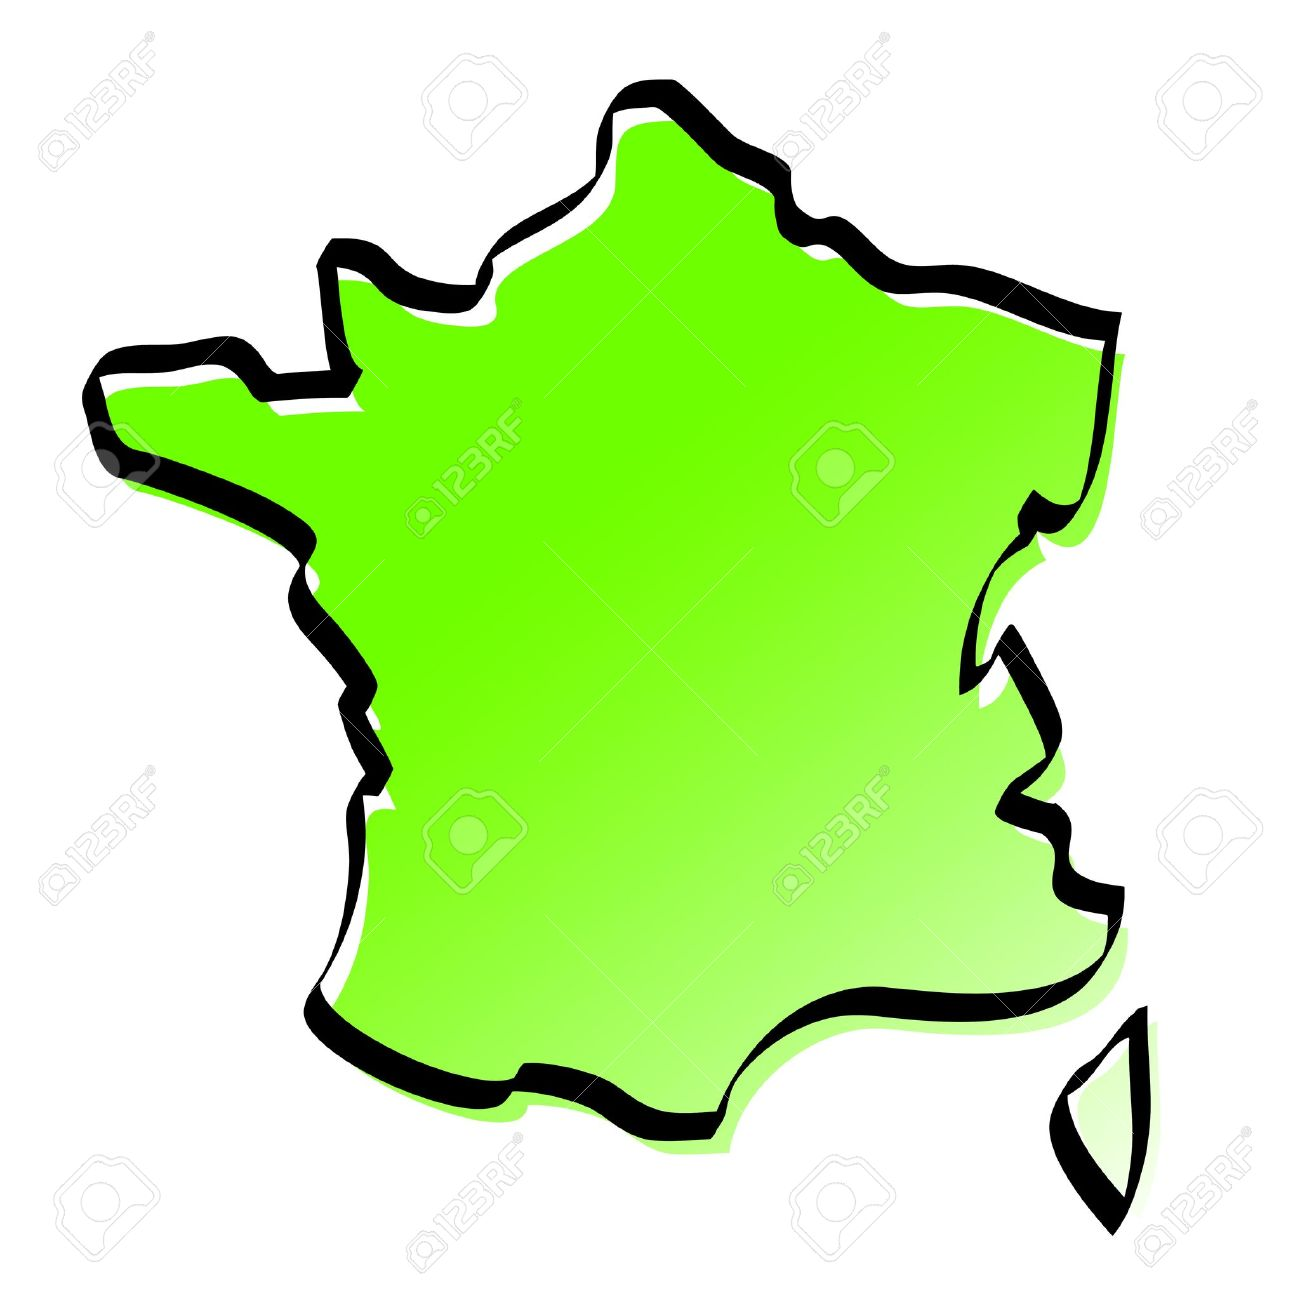 carte de france stylisée Stylized Map Of France Royalty Free Cliparts, Vectors, And Stock